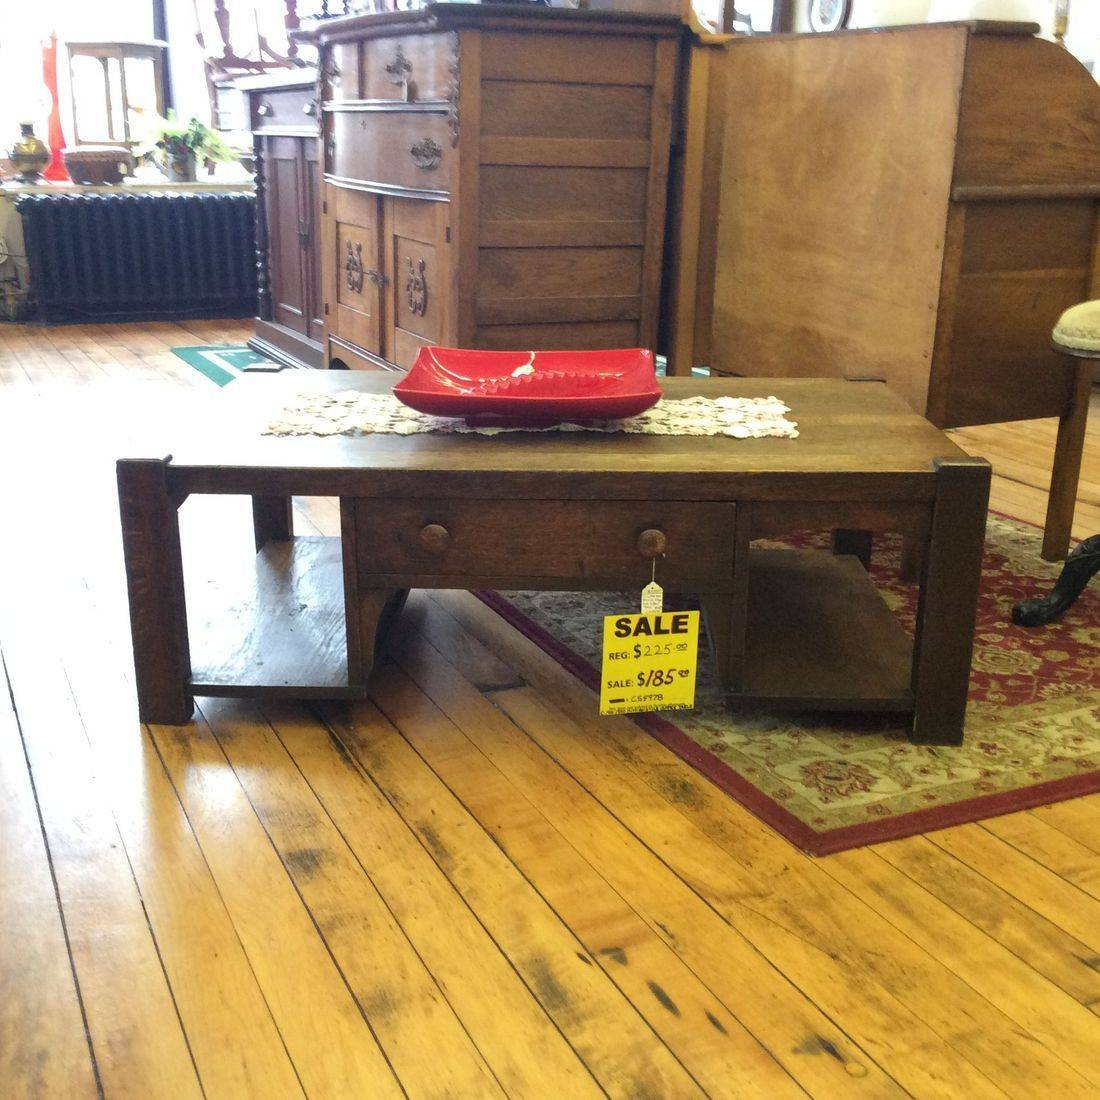 "Circa 1910 / 1920 Mission Style Oak Desk Revamped into Coffee Table 42-1/2"" L x 26-1/2"" D x 15"" H.  $225.00"